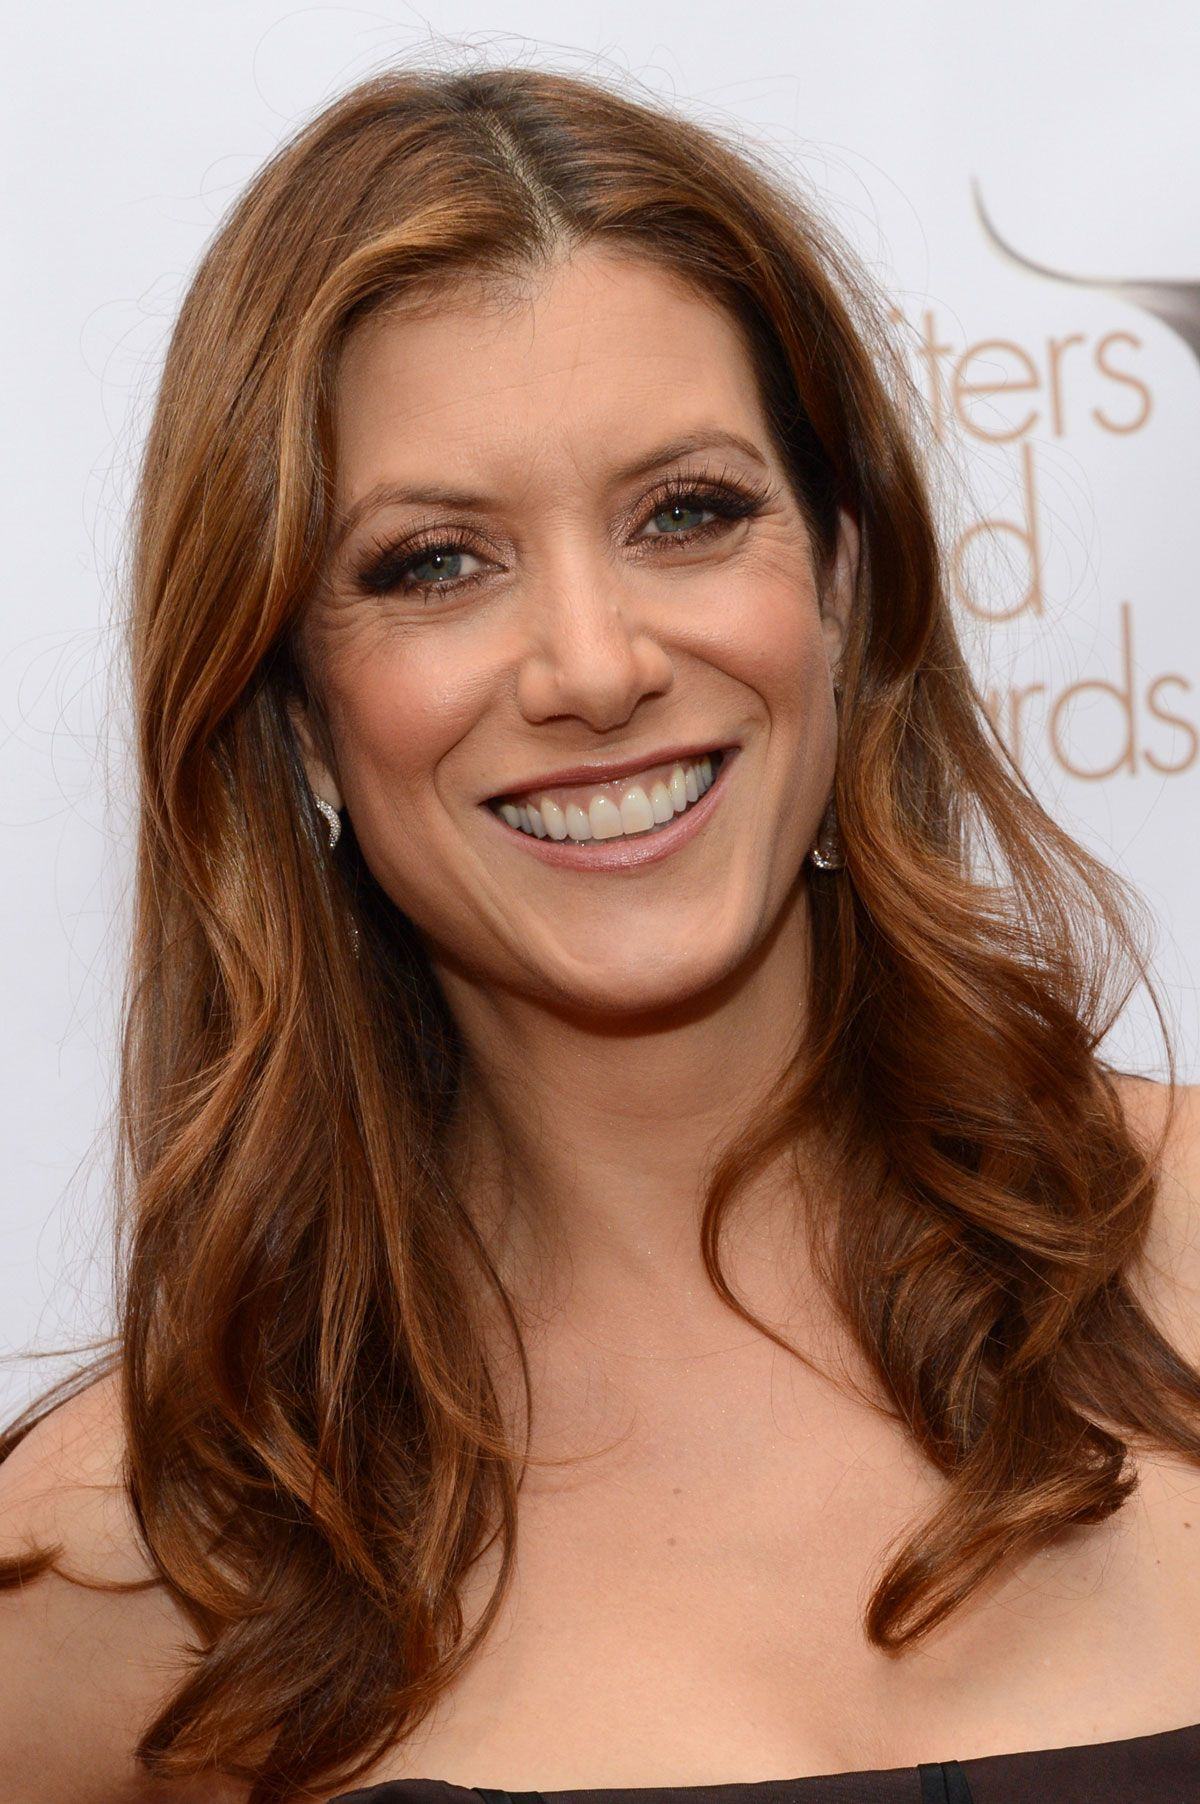 kate walsh and catherine deneuvekate walsh instagram, kate walsh right back, kate walsh broken glass, kate walsh young, kate walsh grey's anatomy, kate walsh and catherine deneuve, kate walsh boyfriend perfume, kate walsh wiki, kate walsh makeup, kate walsh and wendie malick, kate walsh chicago, kate walsh trevor davis, kate walsh hair color, kate walsh come home, kate walsh house, kate walsh music, kate walsh periscope, kate walsh vocal, kate walsh peppermint radio, kate walsh interview